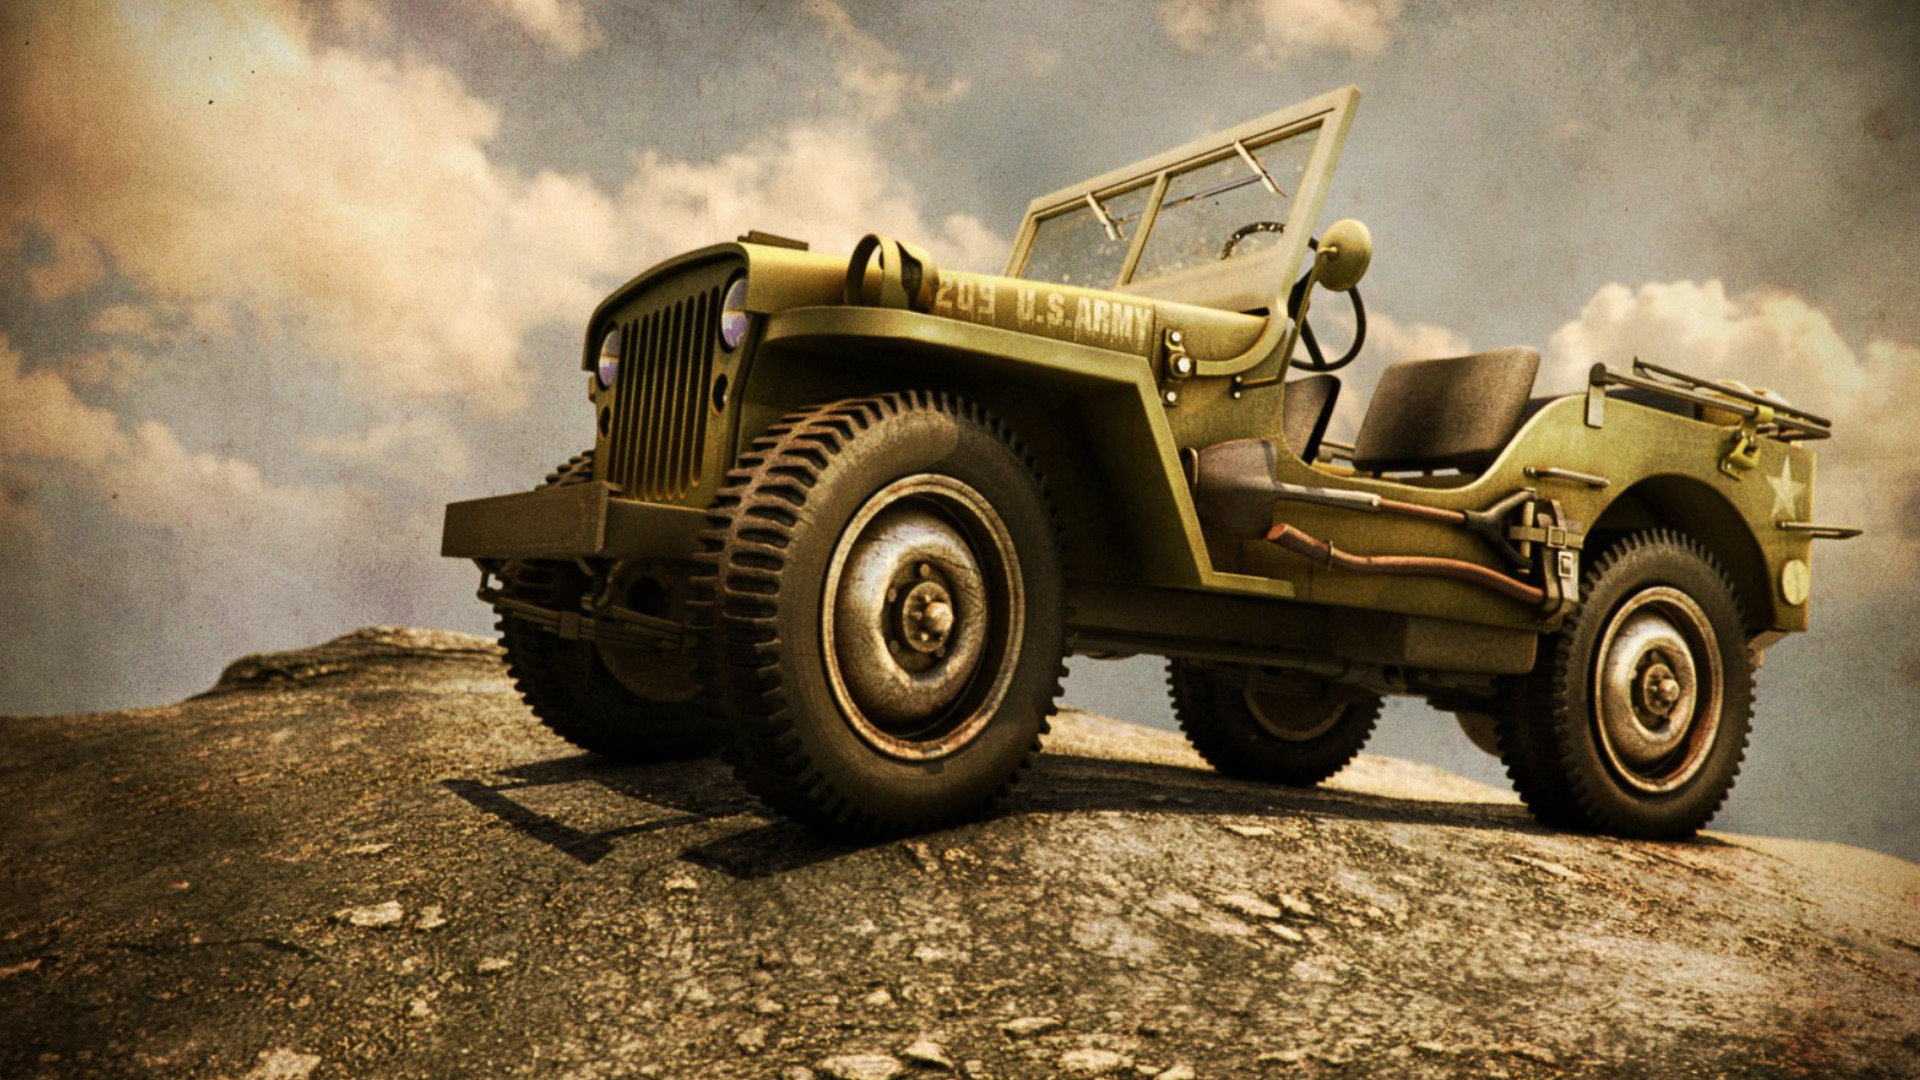 Awesome Vehicle Military free wallpaper ID:50433 for hd 1080p desktop